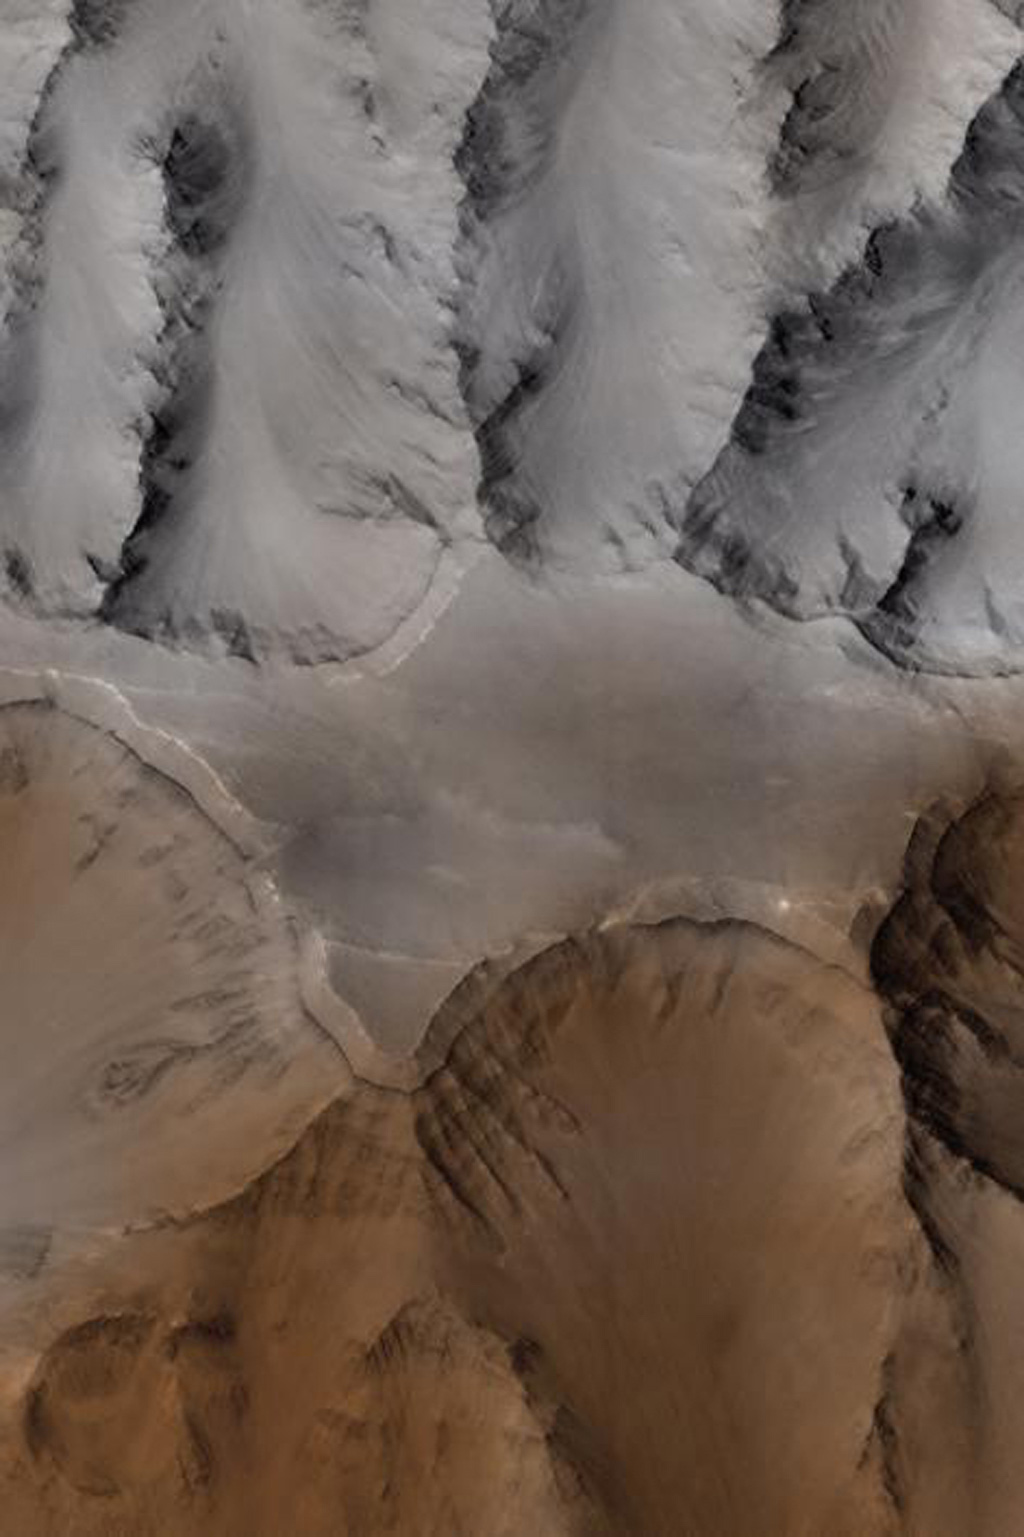 This image acquired by NASA's Mars Global Surveyor on April 13, 1998 shows the Cydonia region on Mars.